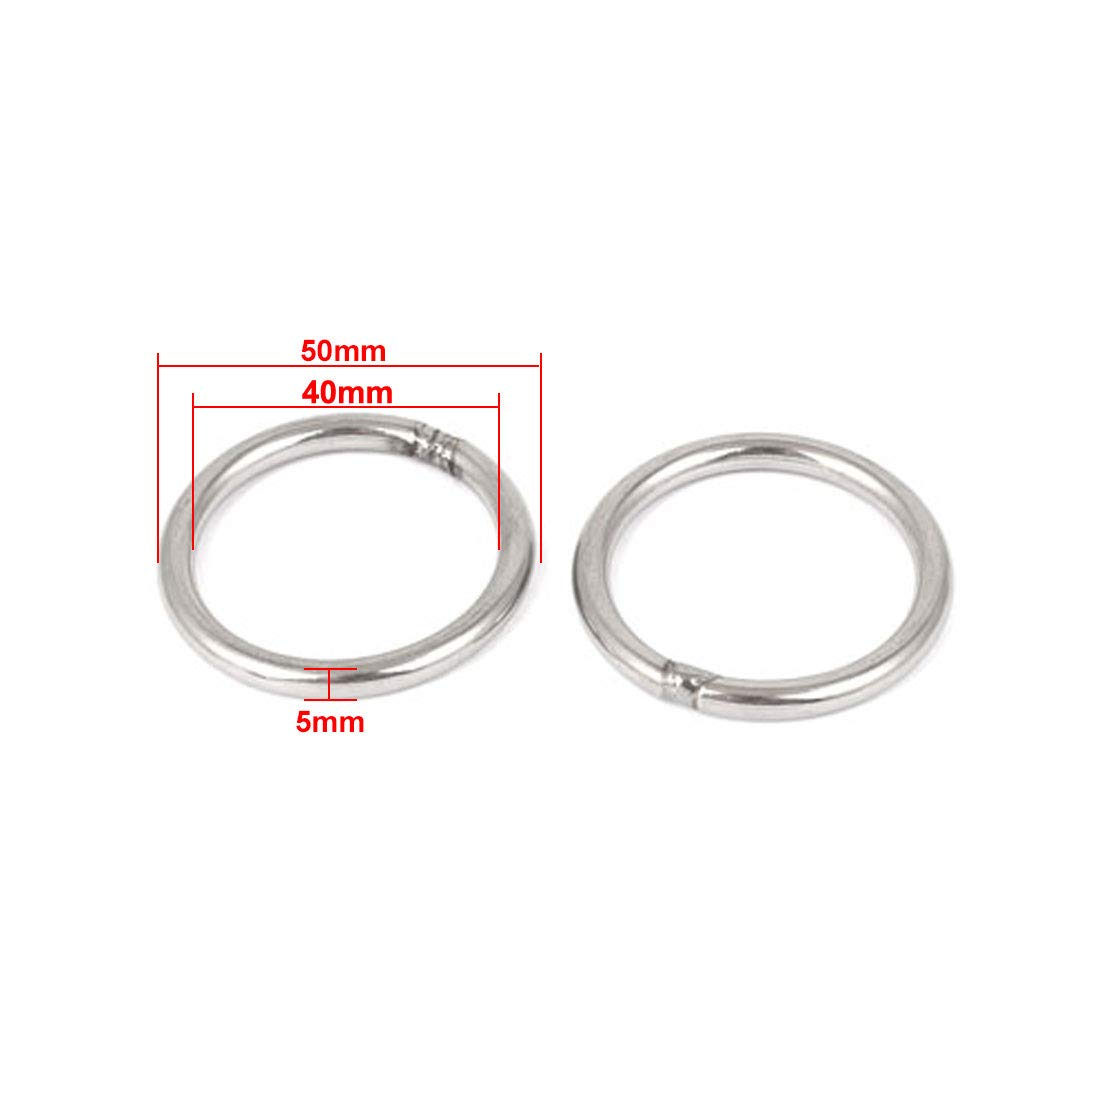 M5 x 40mm 201 Stainless Steel Strapping Welded Round O Rings 2 Pcs